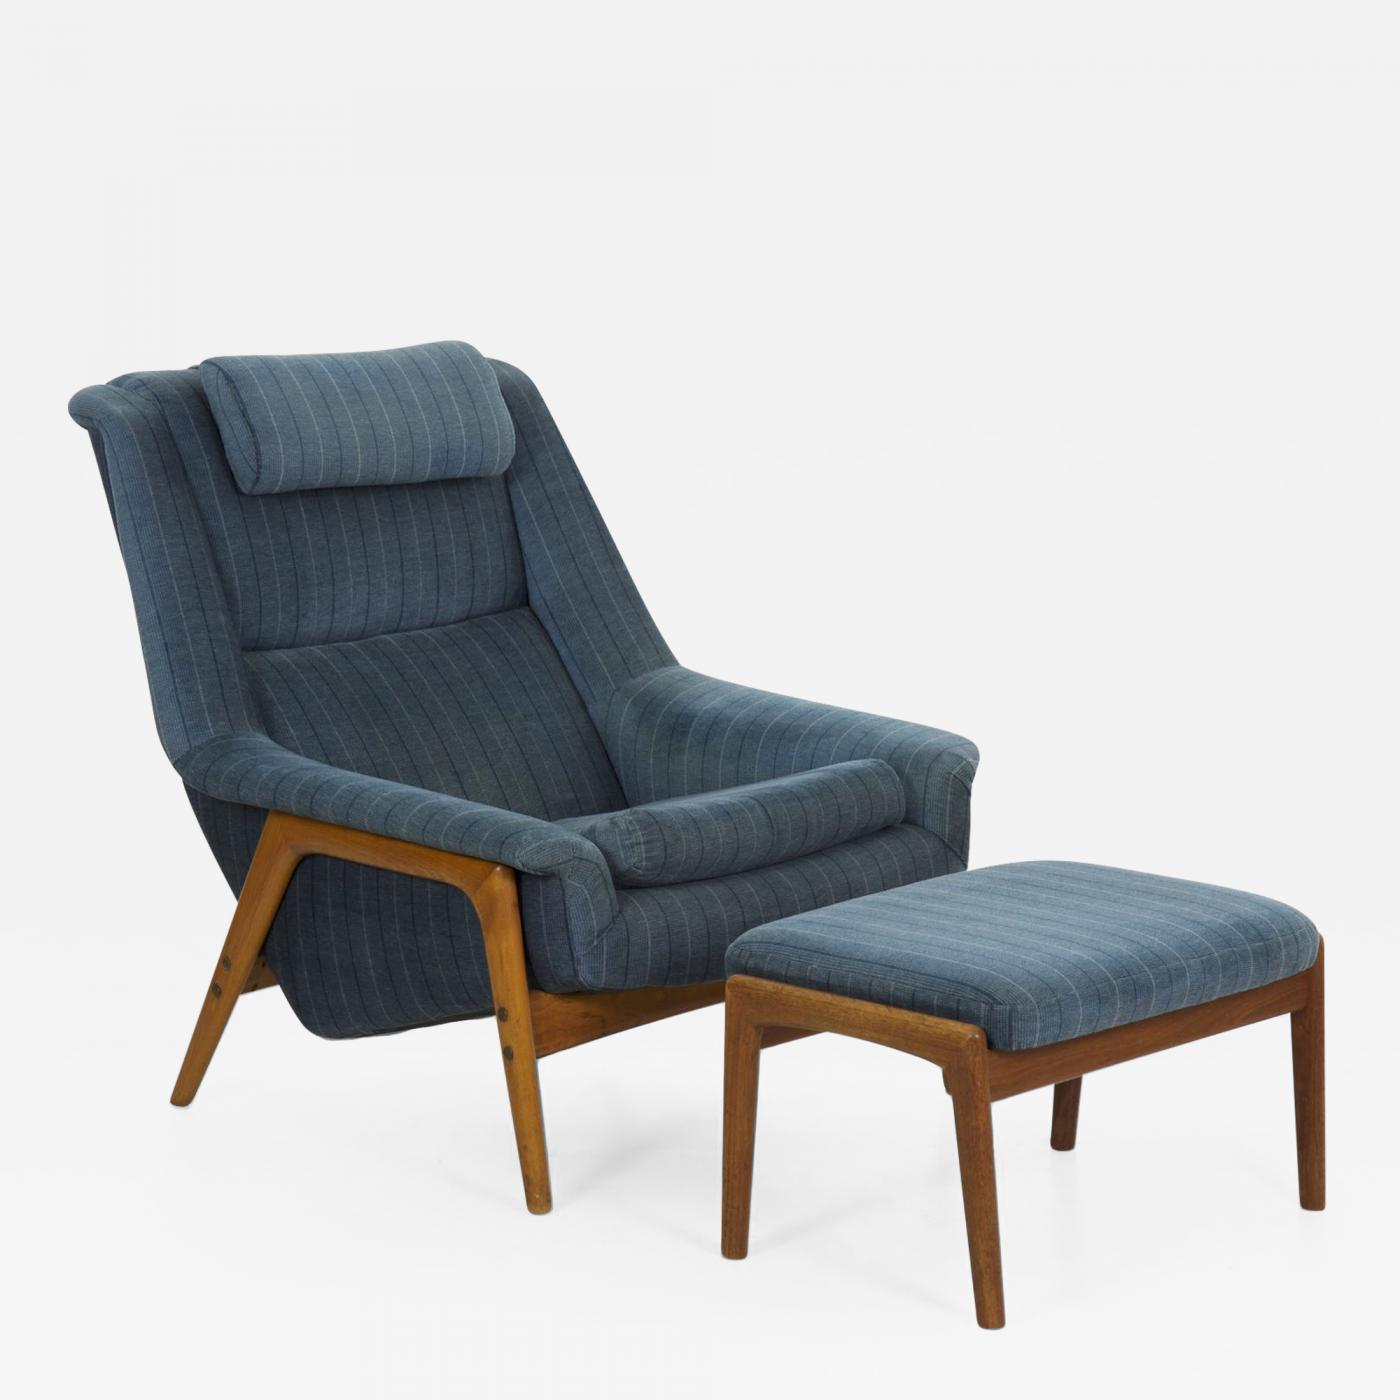 & Mid Century Lounge Chair with Adjustable Ottoman by Folke Ohlsson